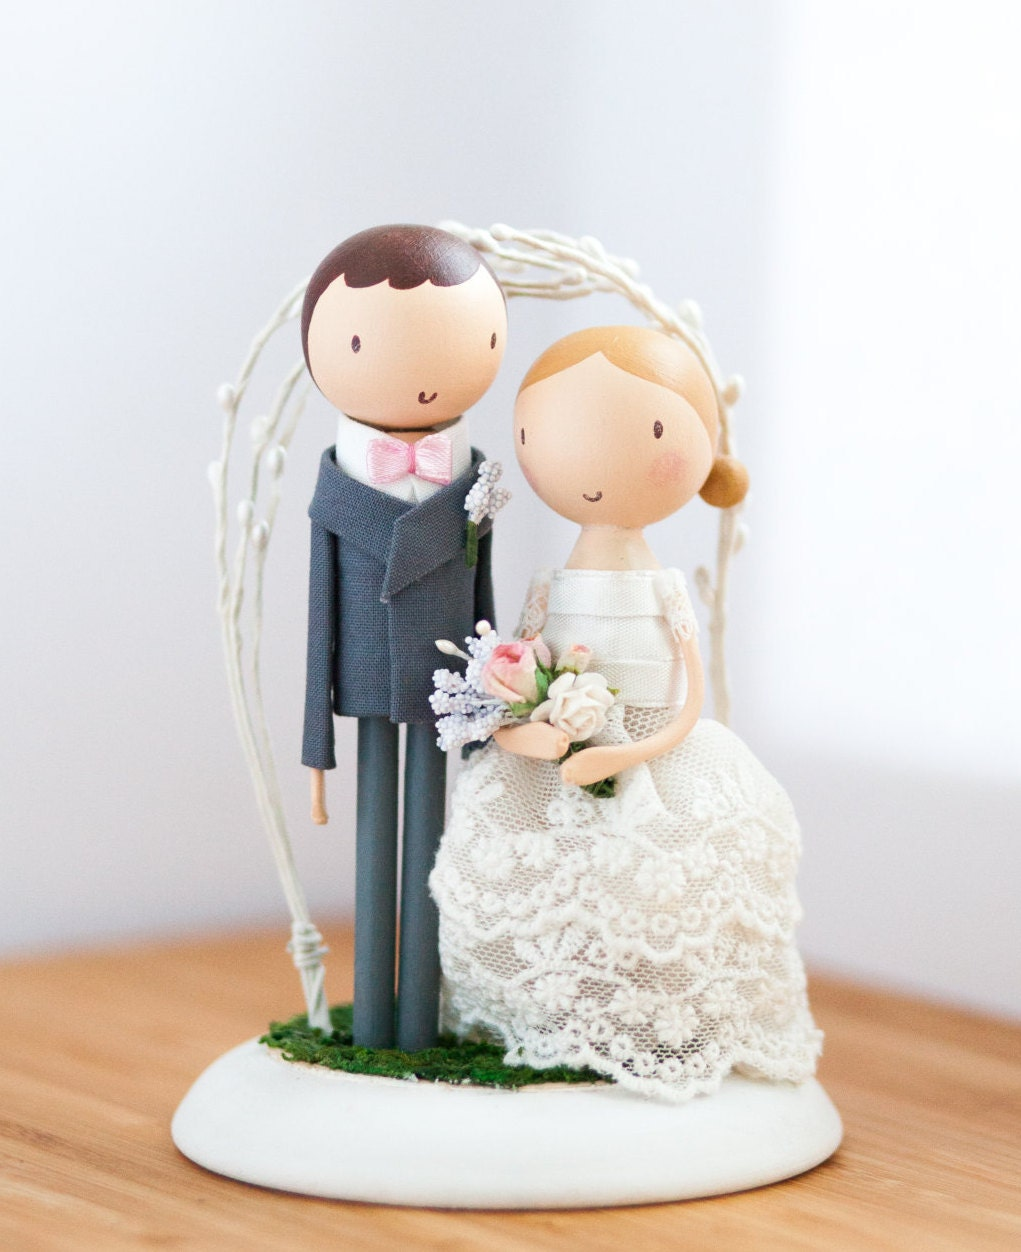 wedding cake toppers etsy wedding cake topper wooden cake topper rustic wedding cake 26456